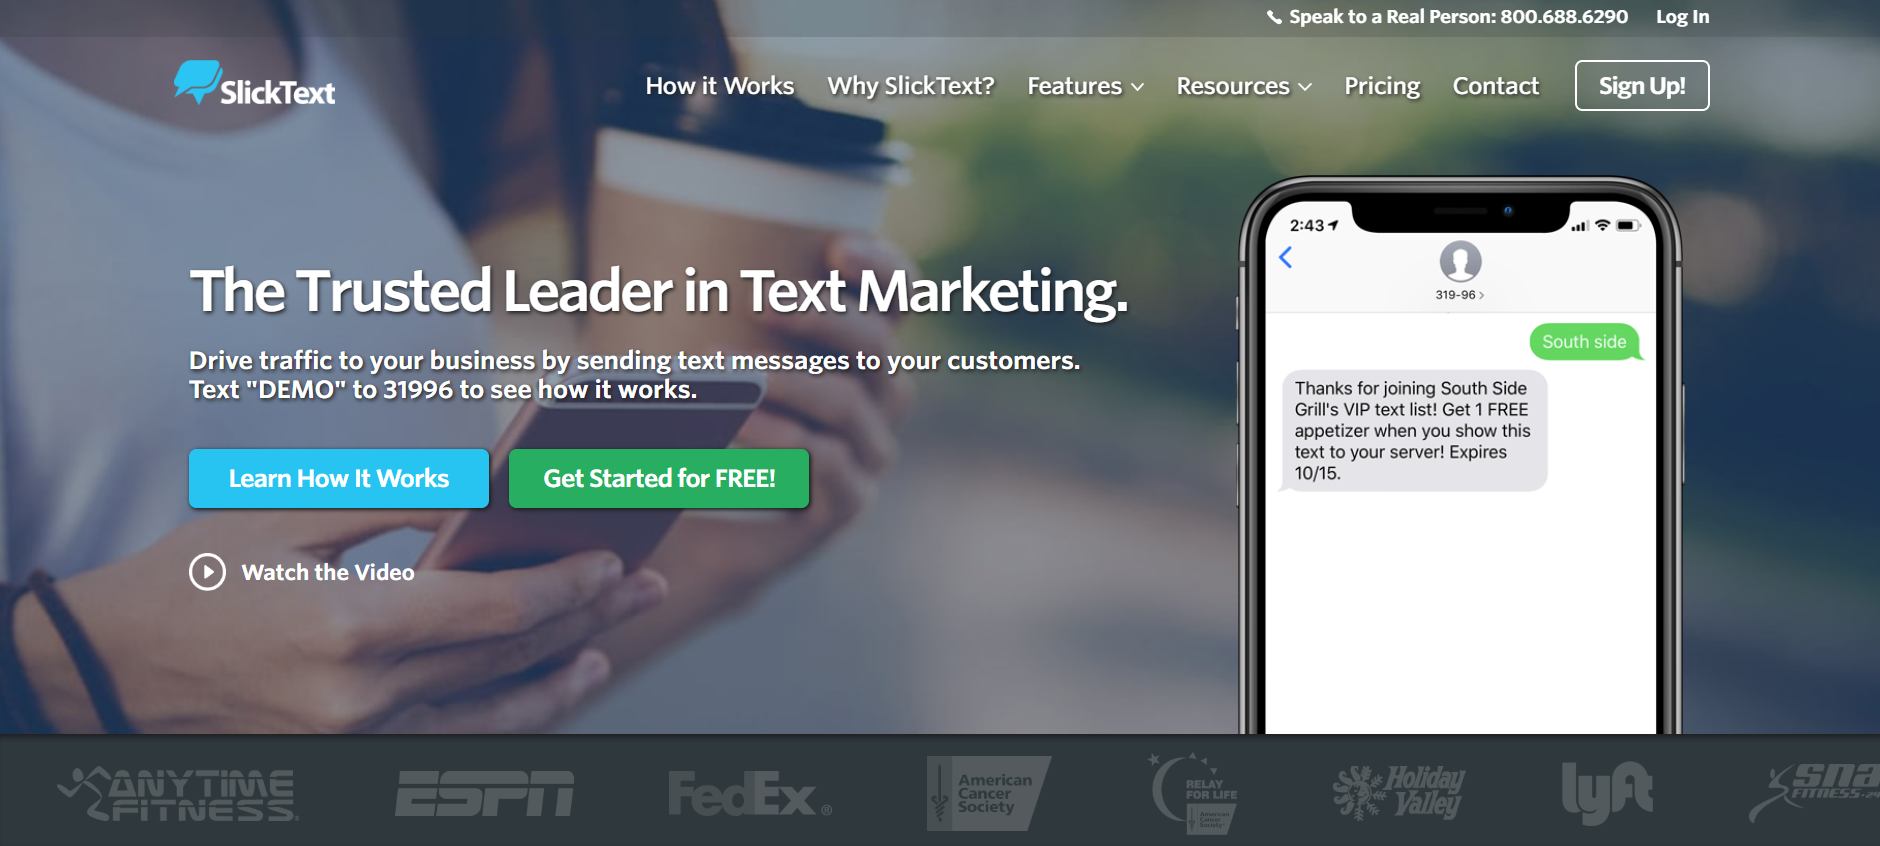 best SMS marketing services - SlickText